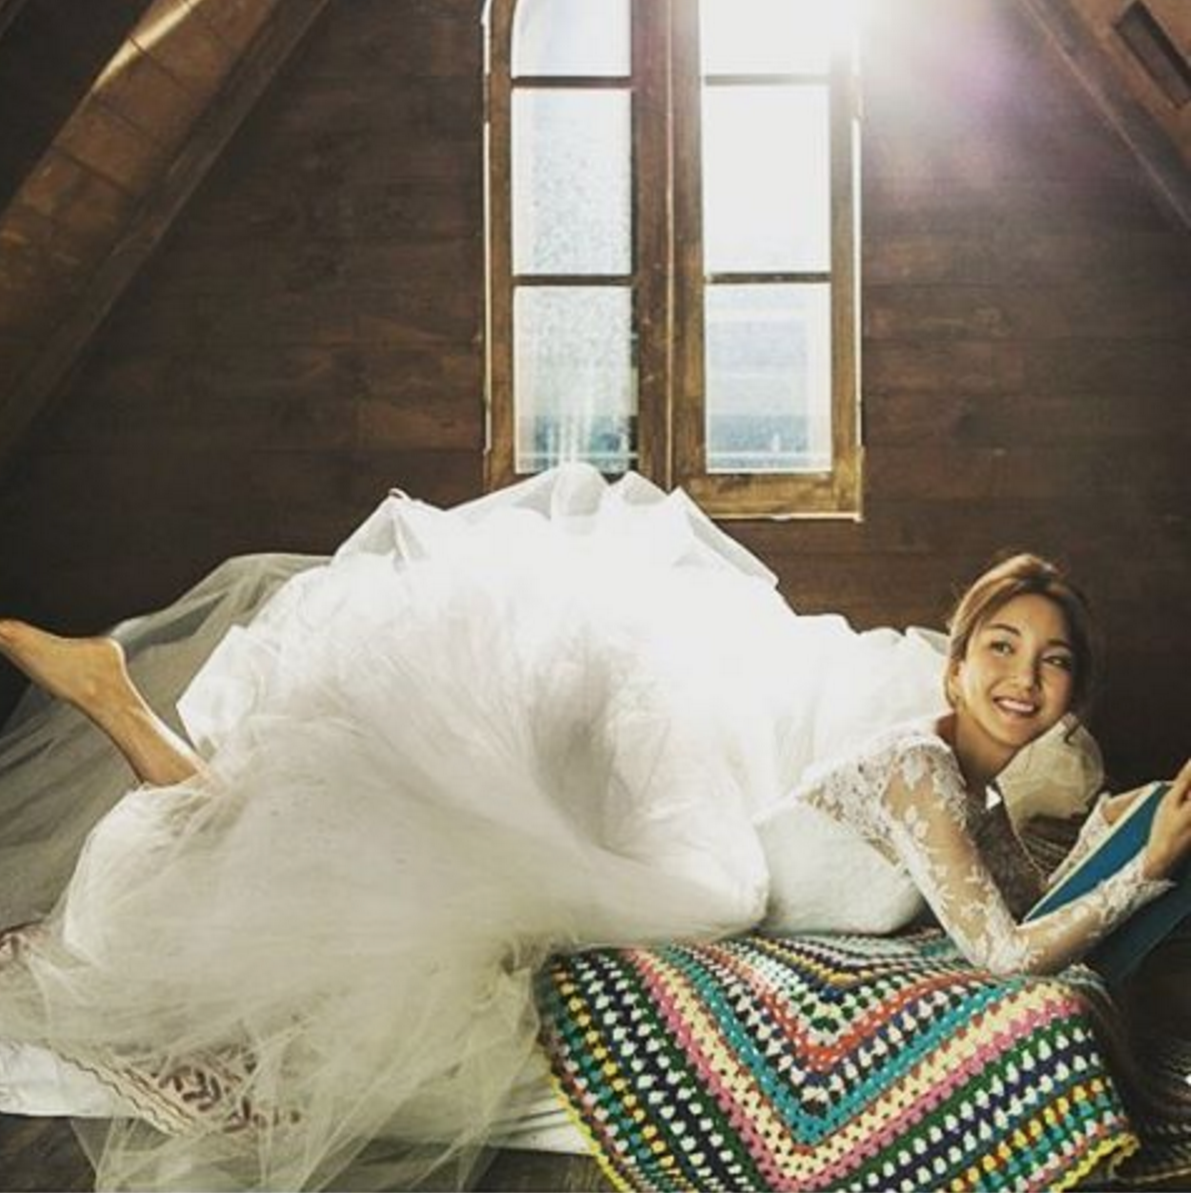 Celebrities Gather At S.E.S.'s Bada's Wedding, One Currently Dating Actress Catches Bouquet